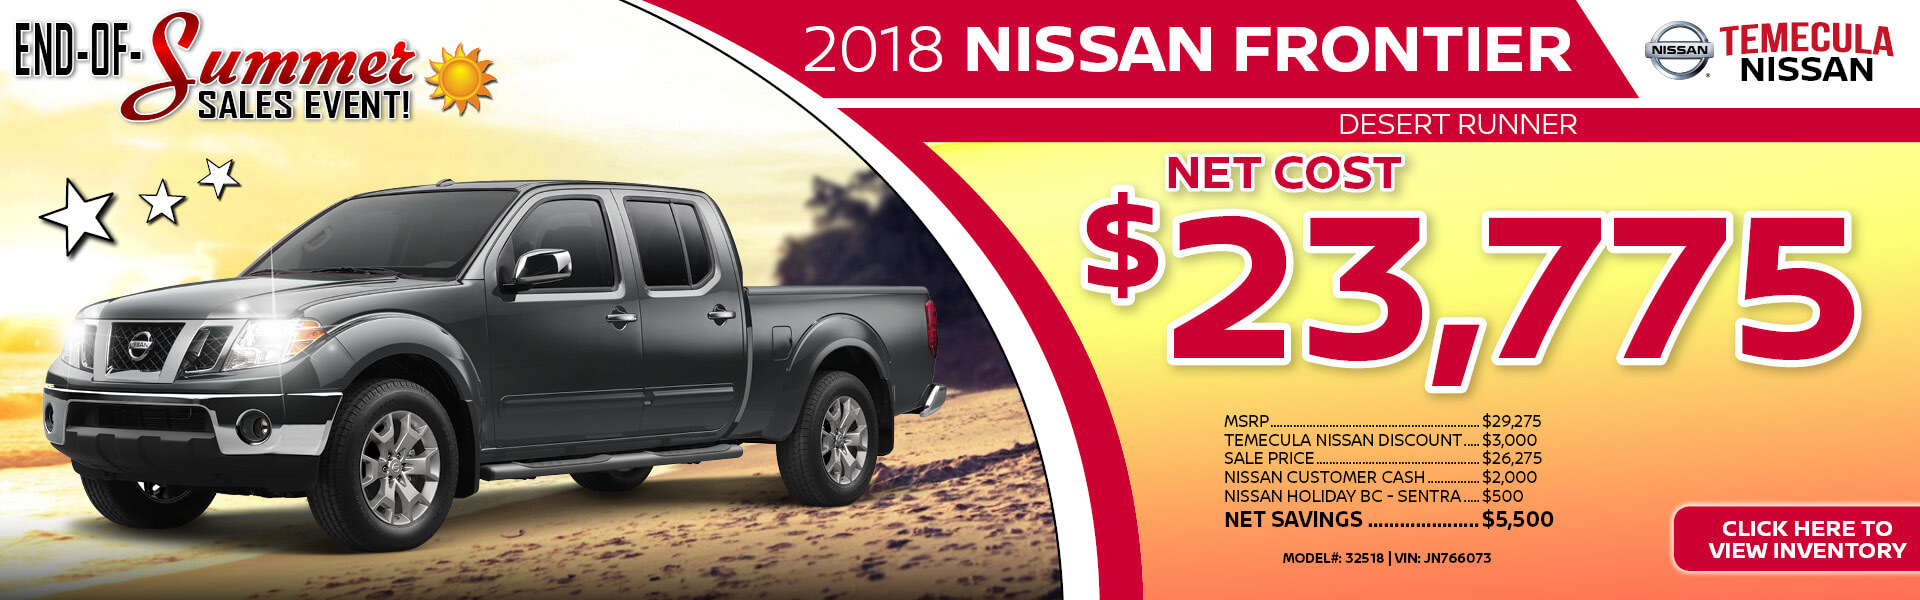 Nissan Frontier $23,775 Purchase